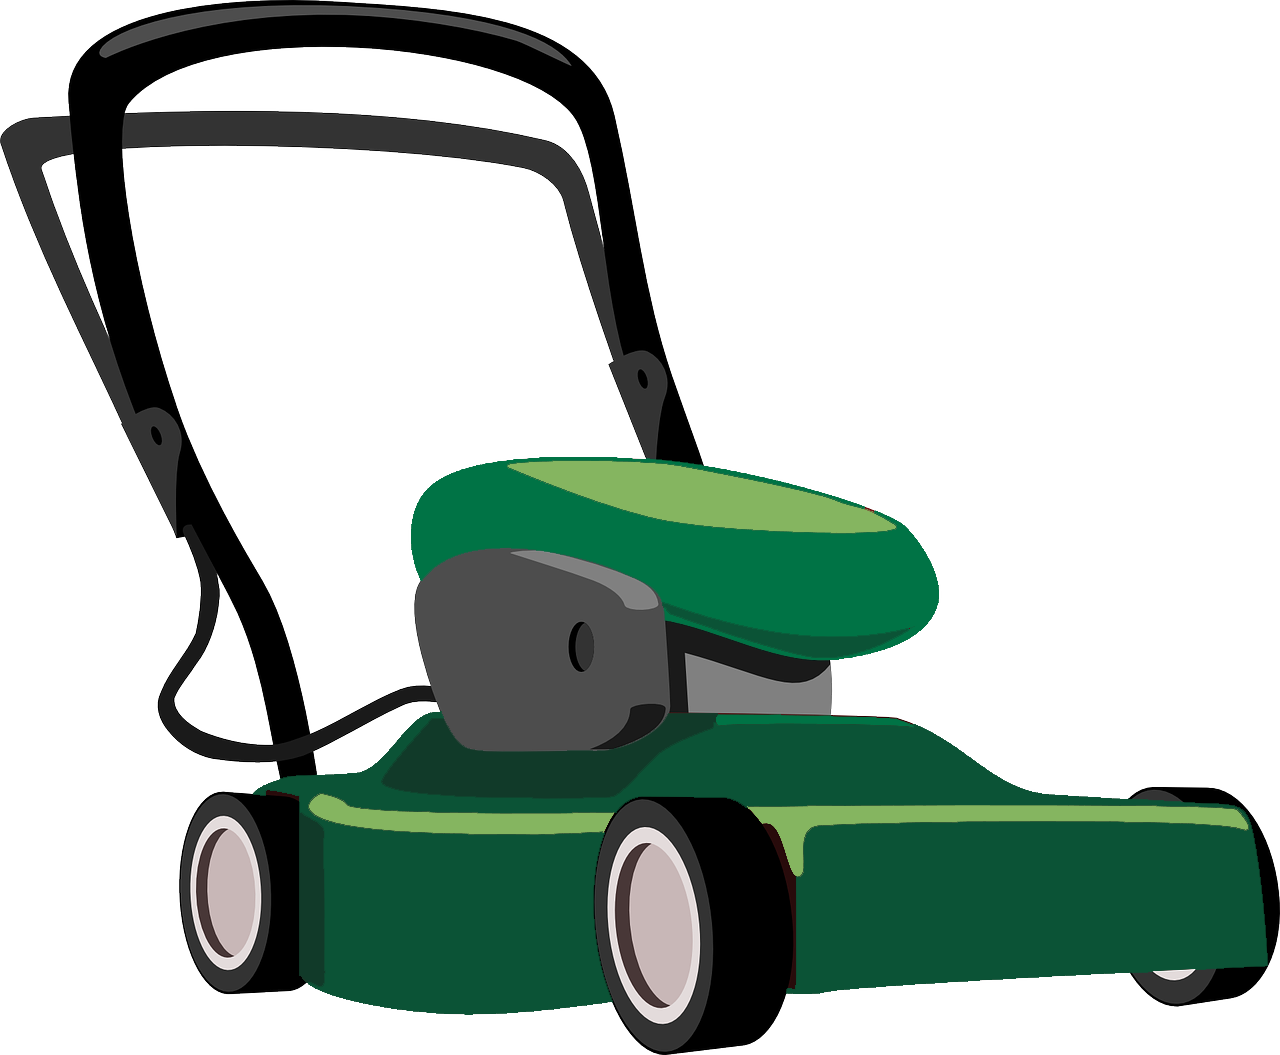 vector royalty free download Mowing clipart lawn equipment. The garden co quality.